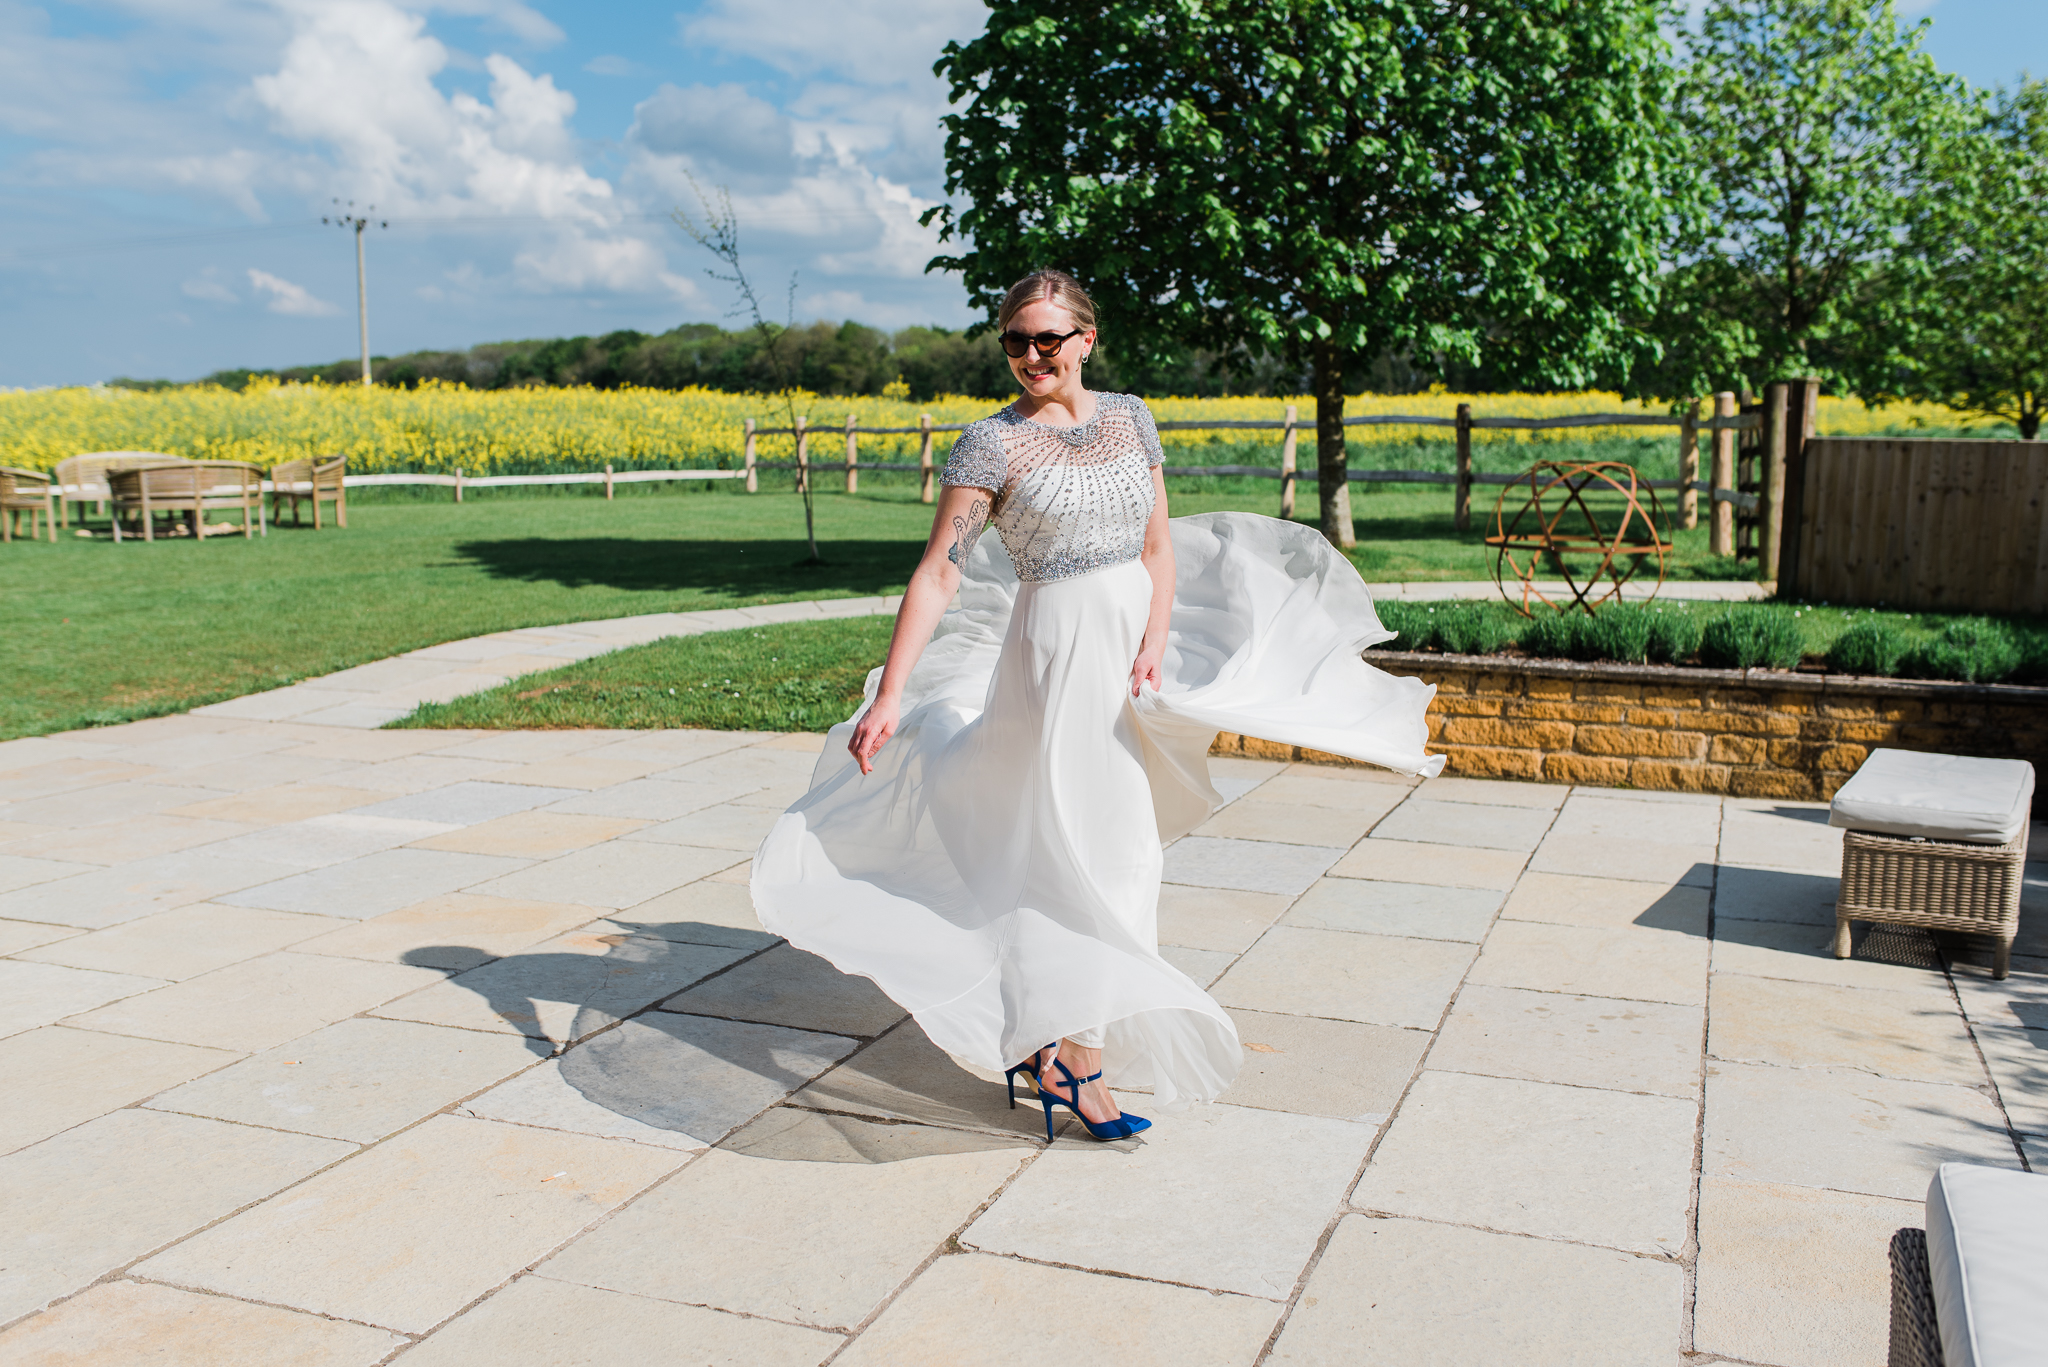 Bride twirling in Jenny Packham dress